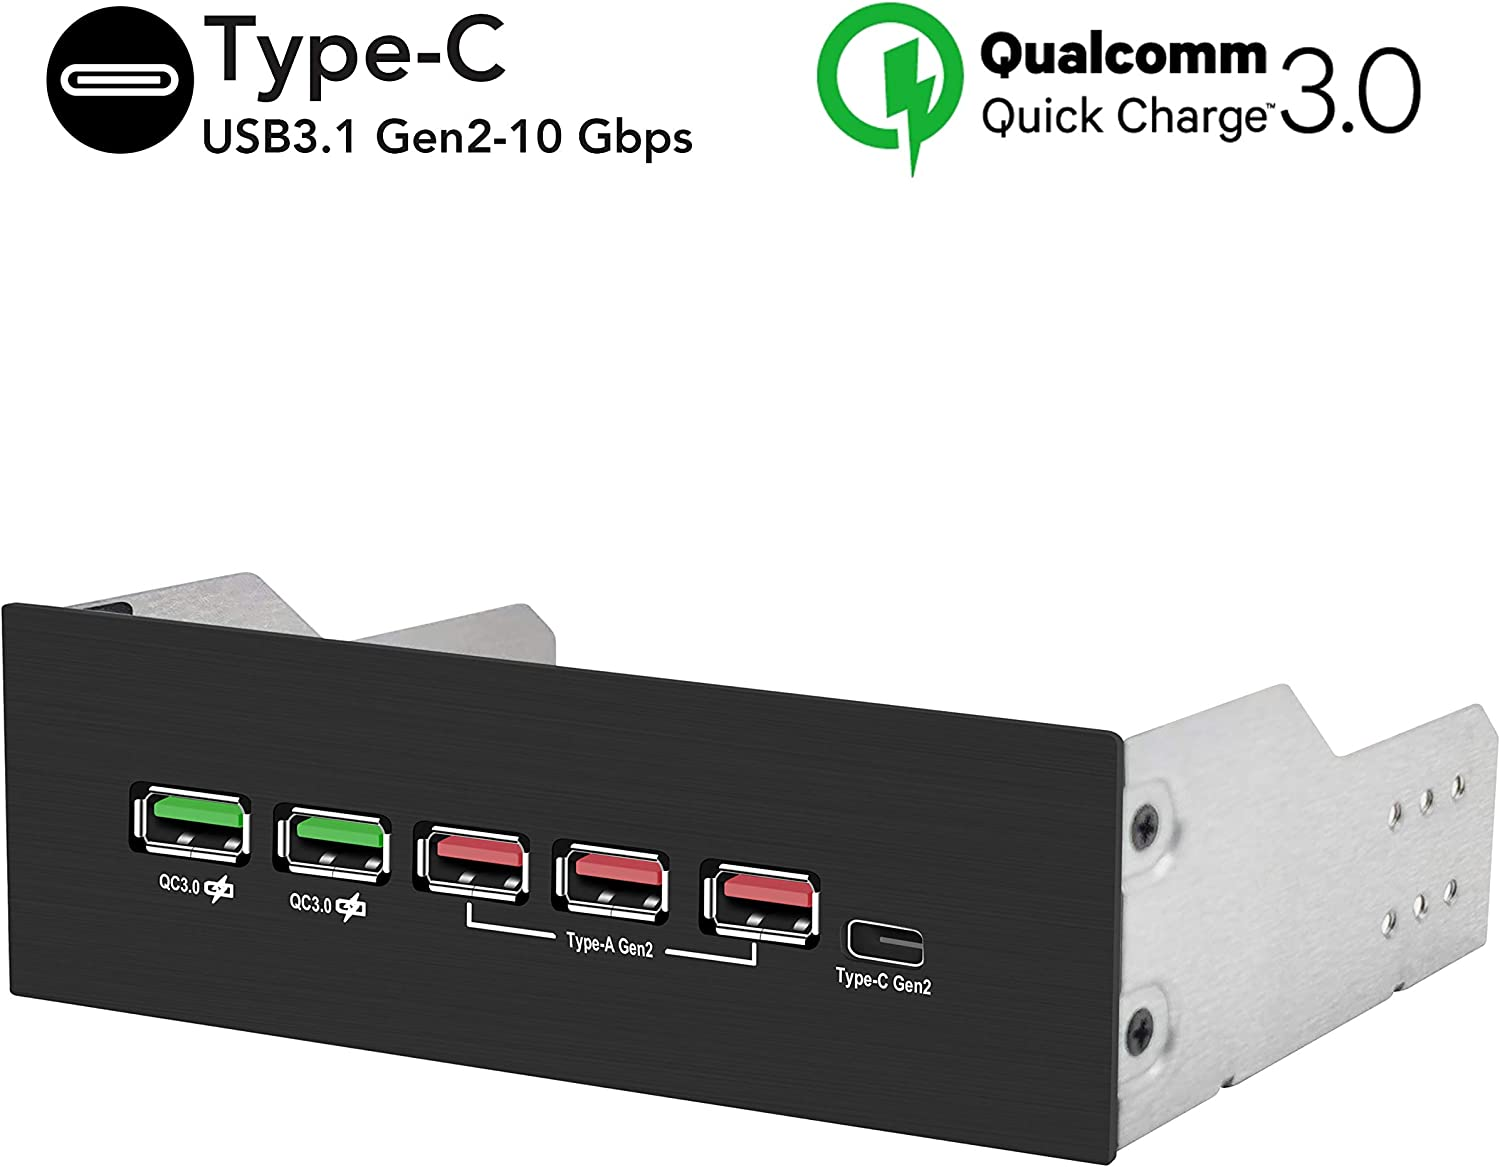 EZDIY-FAB 5.25in 10Gbps USB 3.1 Gen2 Hub and Type-C Port,Front Panel USB Hub with QC 3.0 Quick Charging